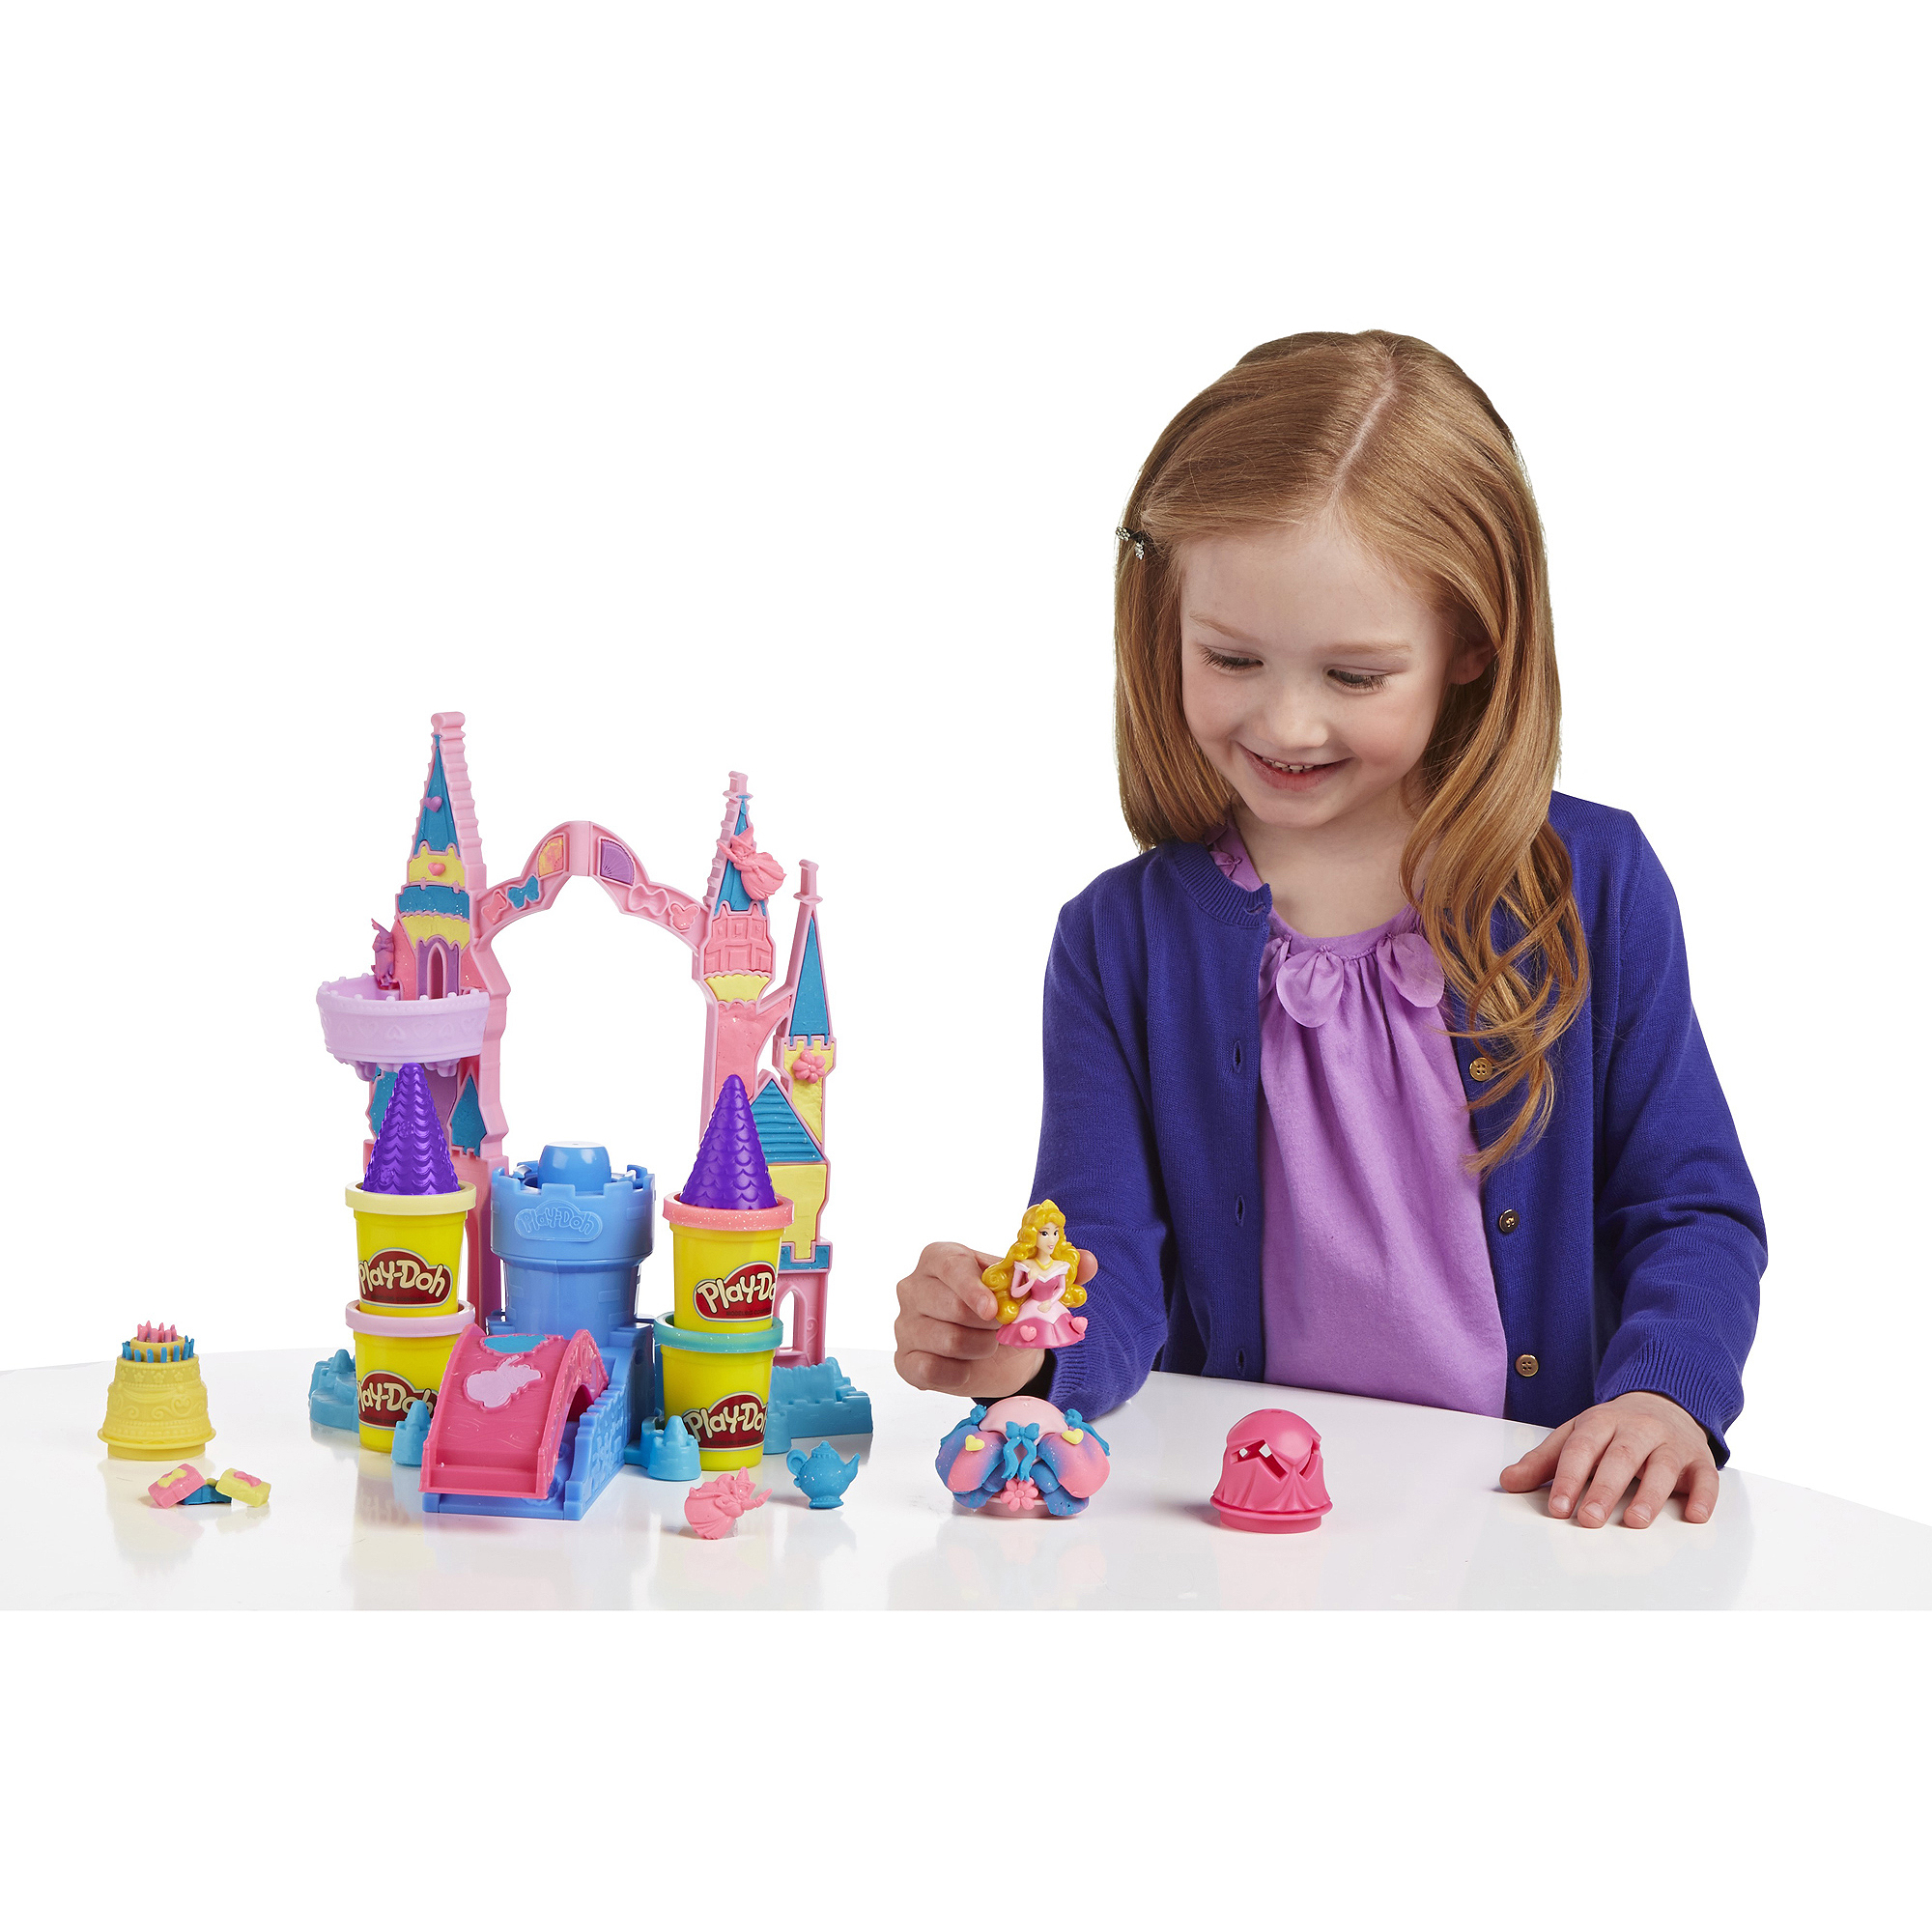 Play-Doh Mix 'n Match Magical Designs Palace Set, Disney Princess Aurora